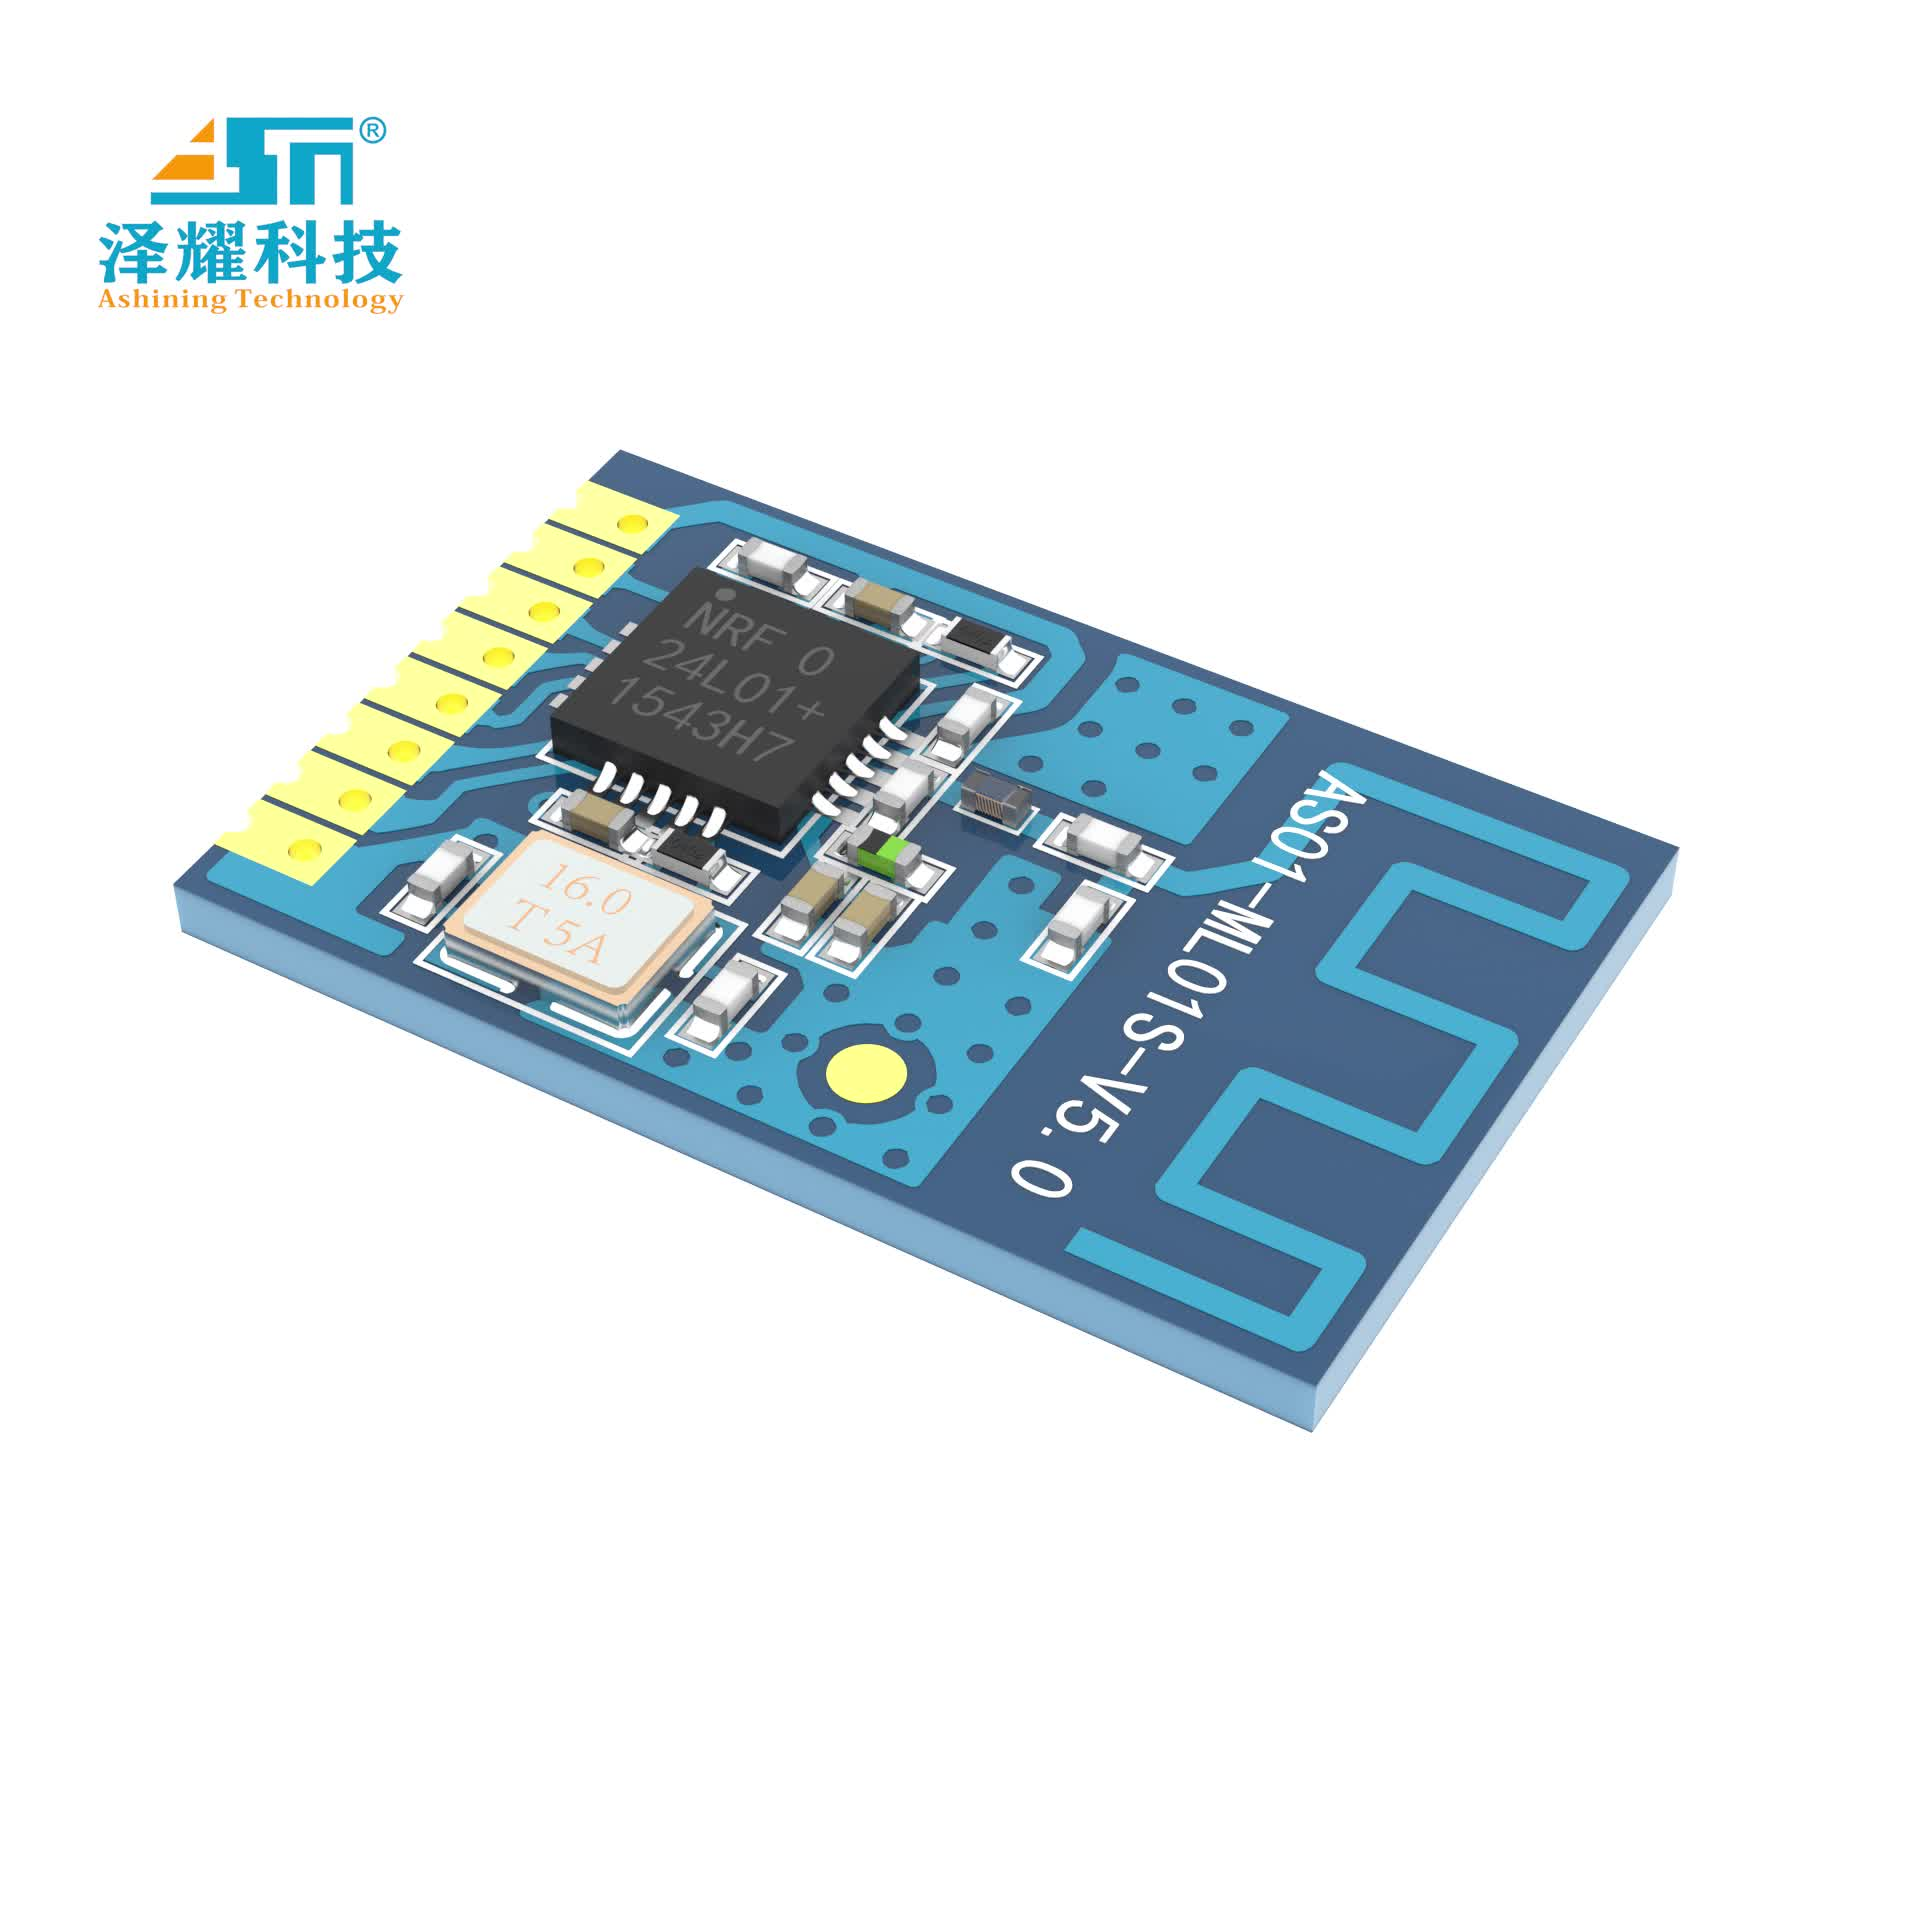 AS01-ml01s 1mw 120m Spi Rf 2.4ghz Cc1101 Si4463 Si4438 Wireless Transceiver And Receiver Interface Module Nrf24l01 100mw